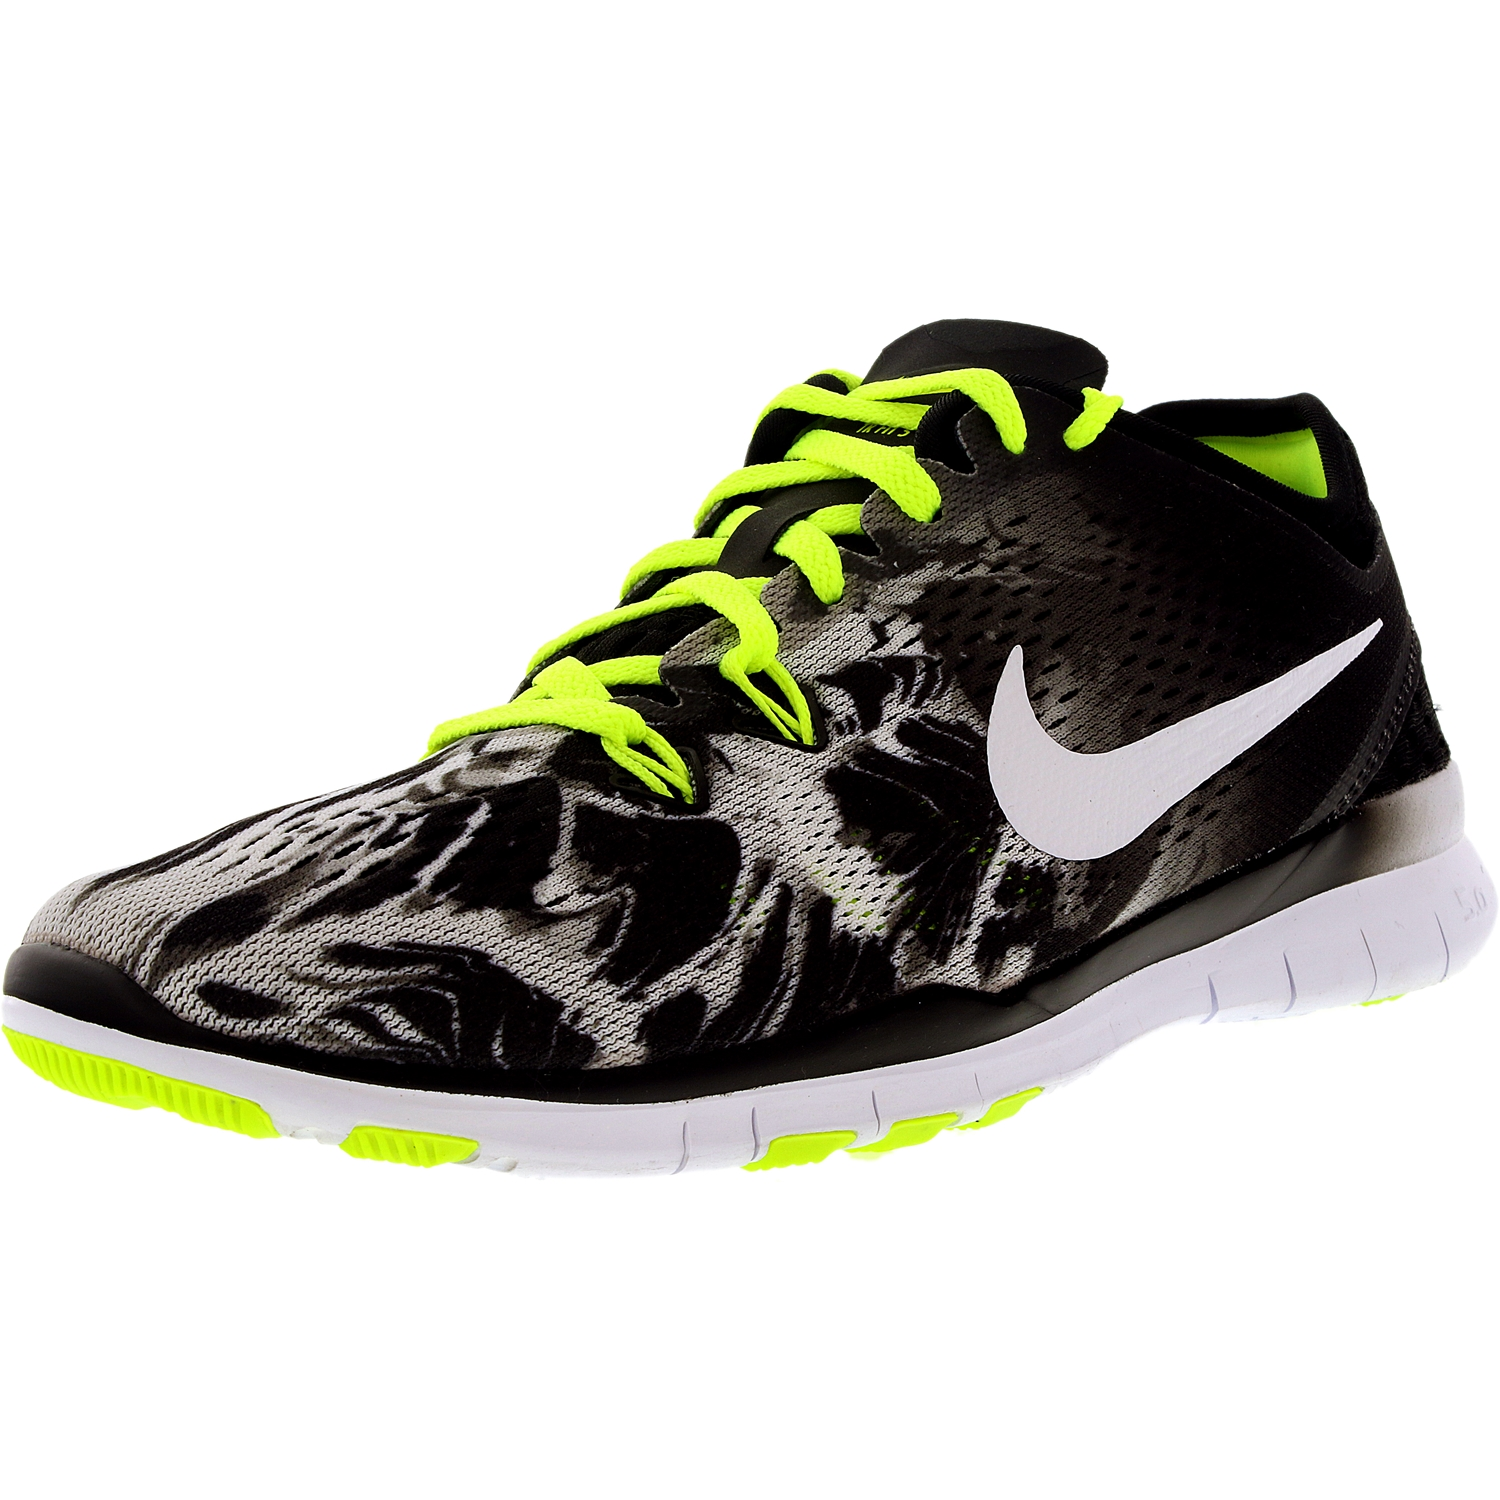 Nike Women's Free 5.0 Tr Fit 5 Prt Black/White/Volt Ankle...